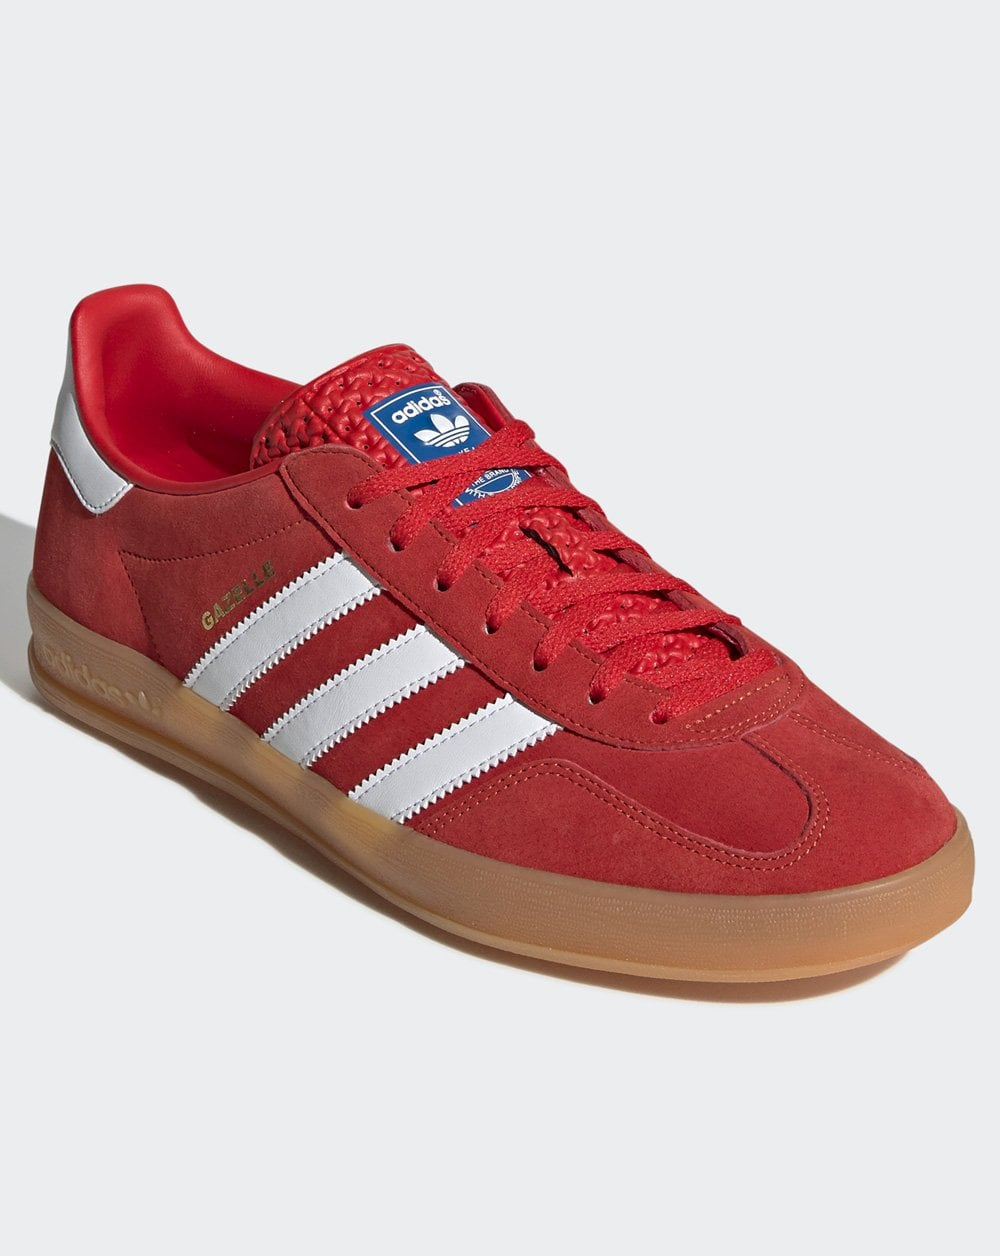 adidas Gazelle indoor Trainer